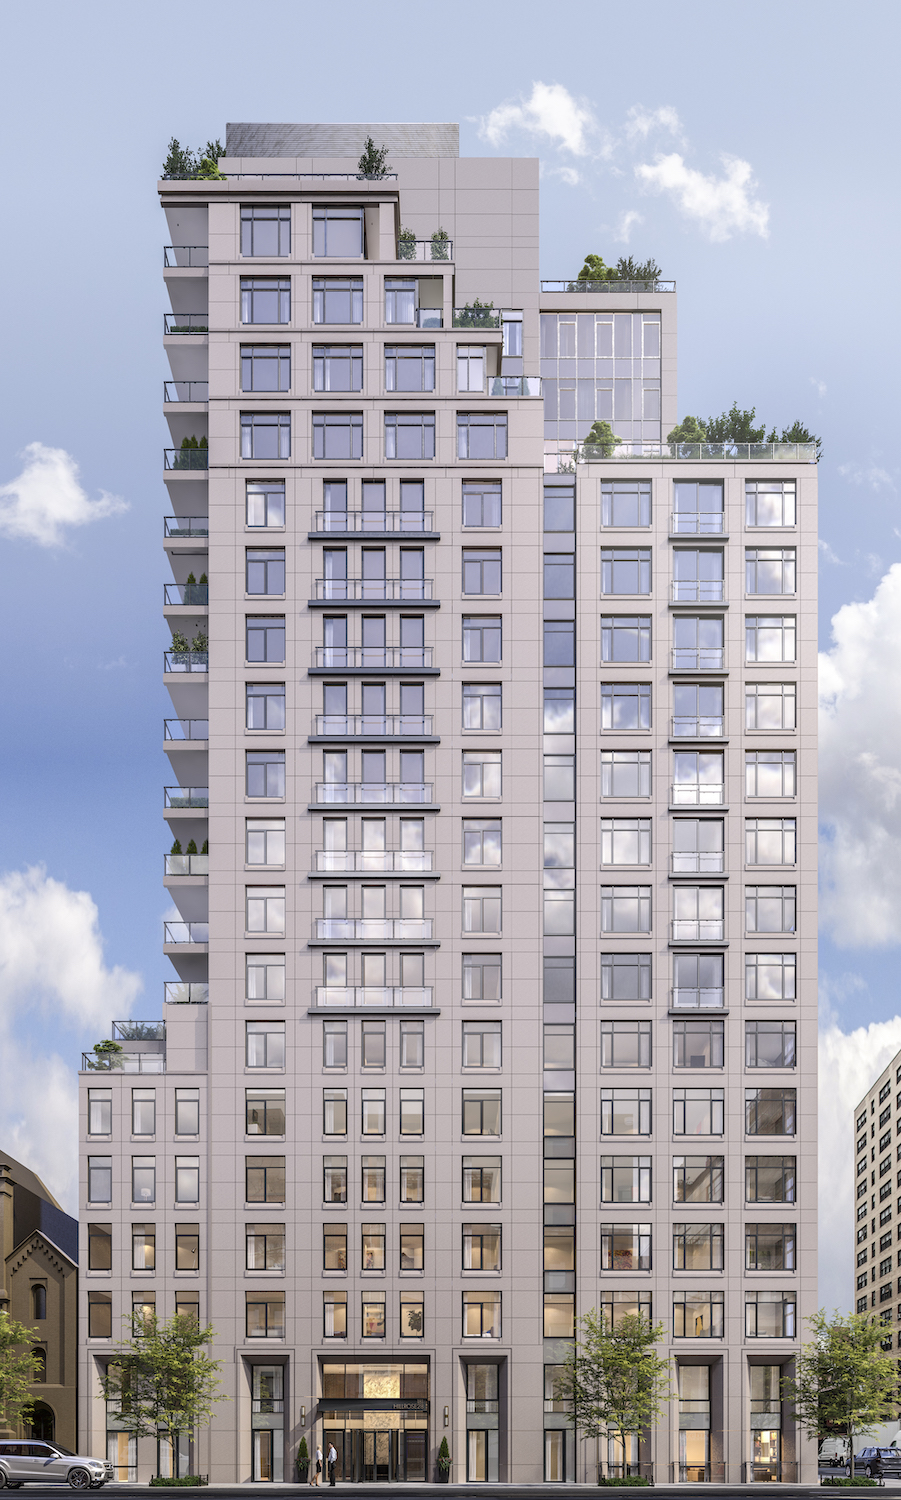 Rendering of Hillrose 28, courtesy of C3D Architecture